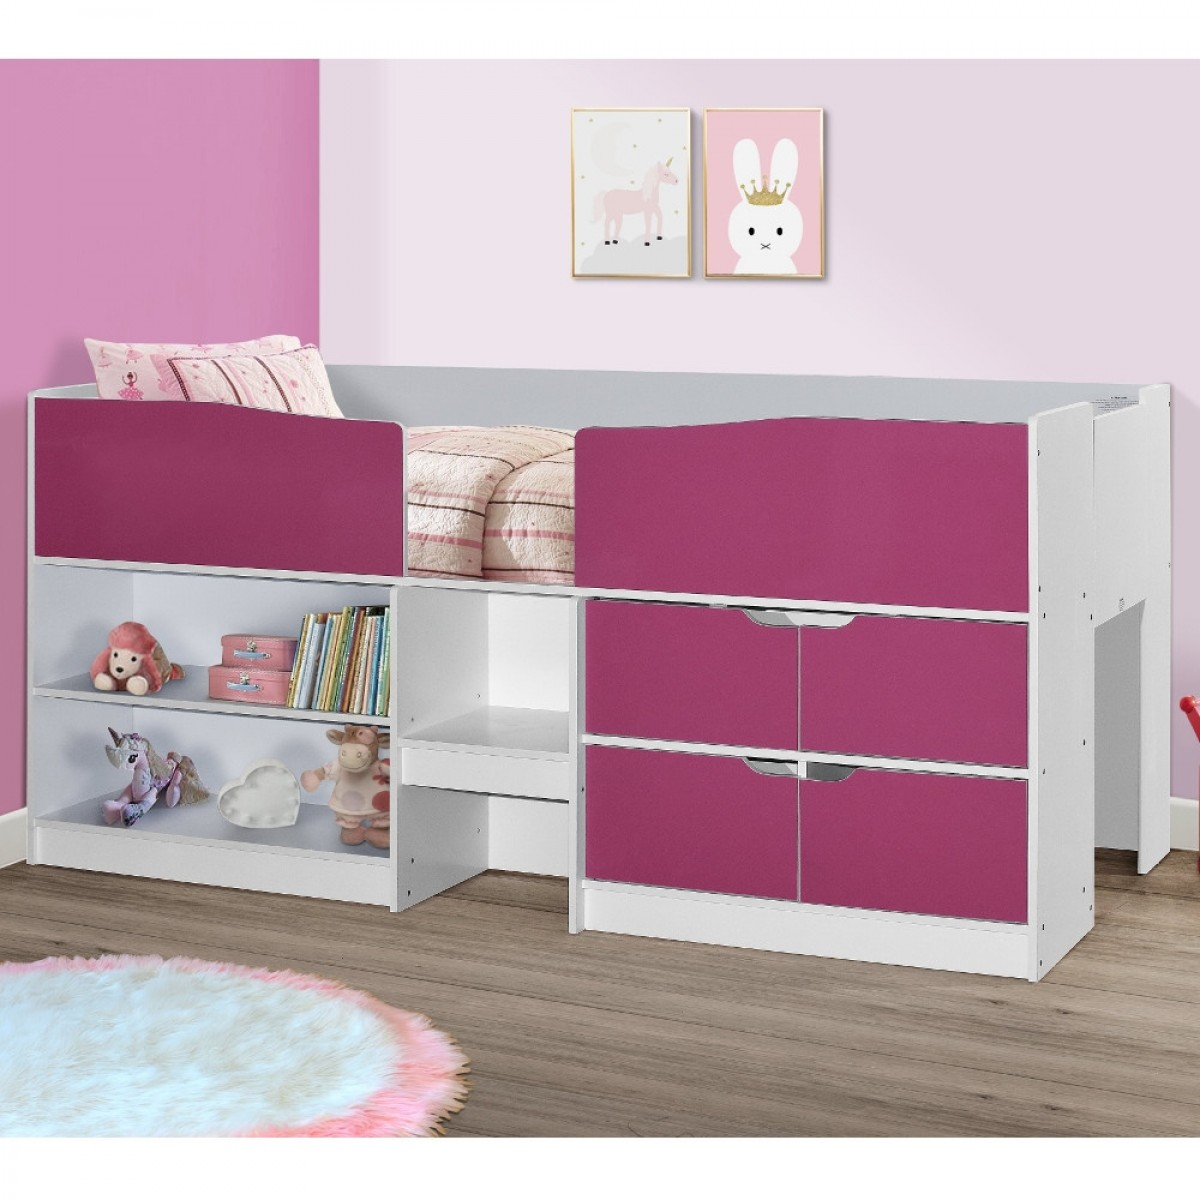 Merlin Pink and White Wooden Mid Sleeper Cabin Storage Bed